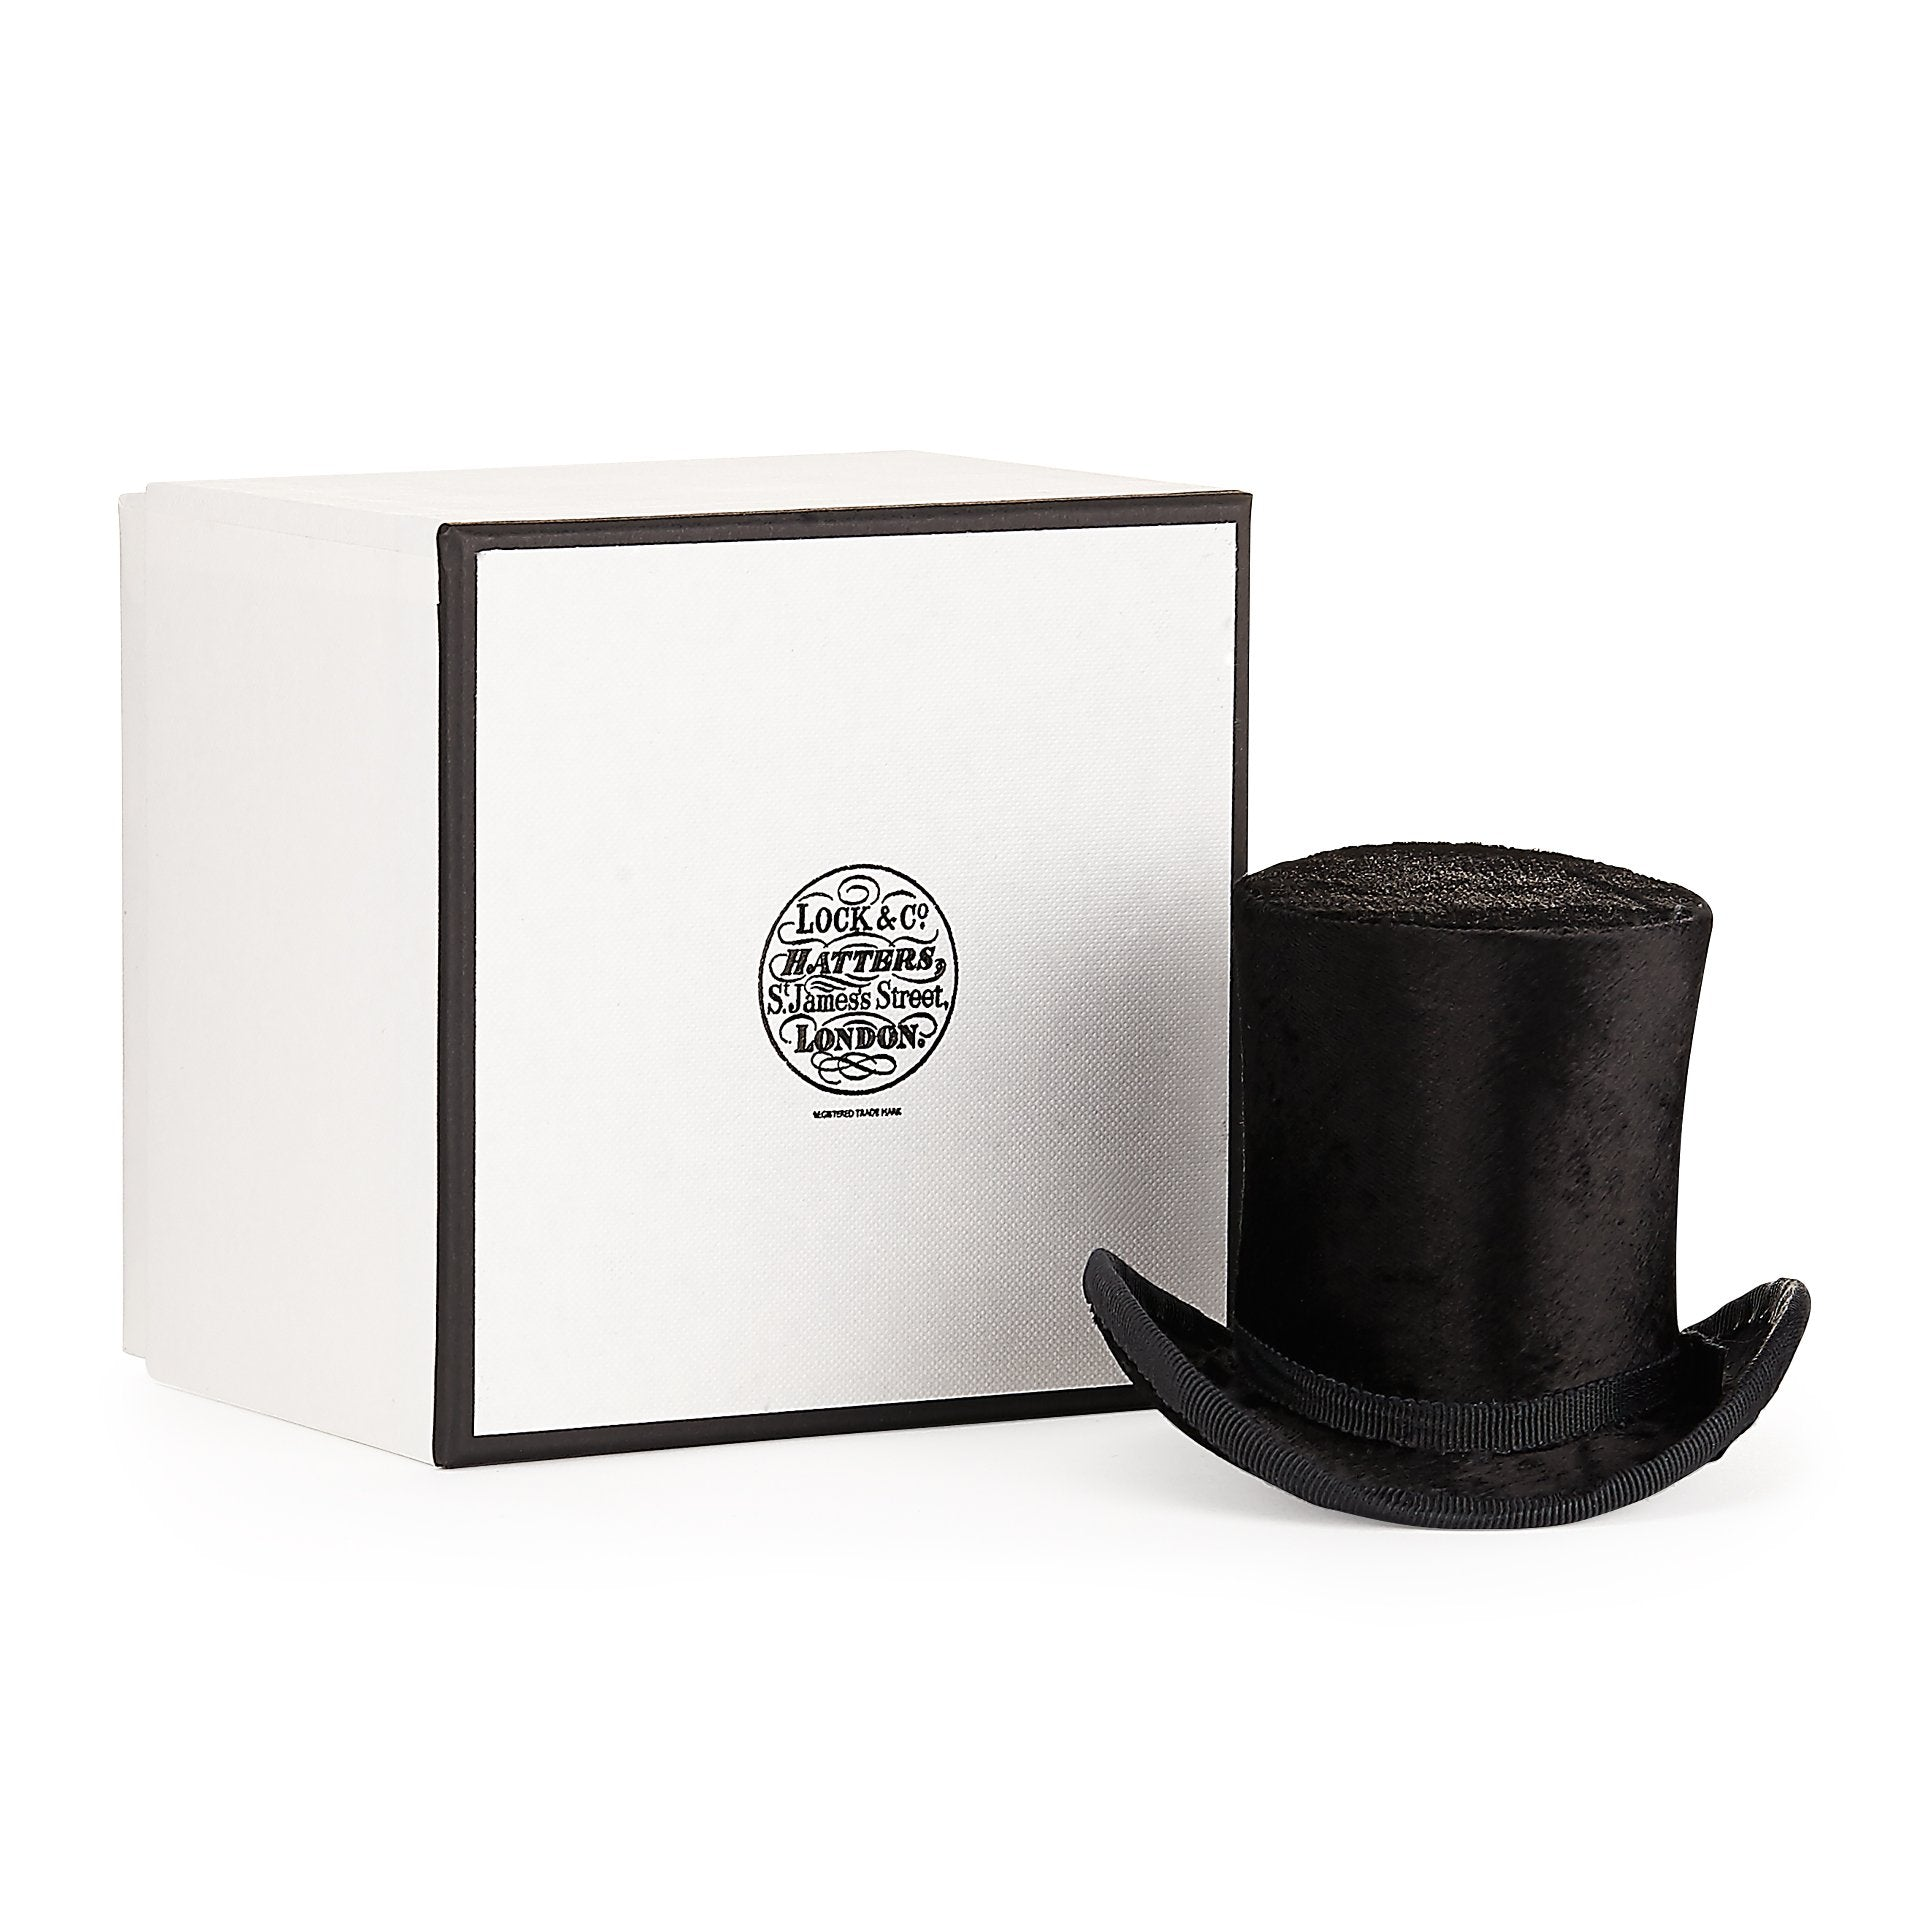 Miniature top hat - Hat Accessories - Lock & Co. Hatters London UK